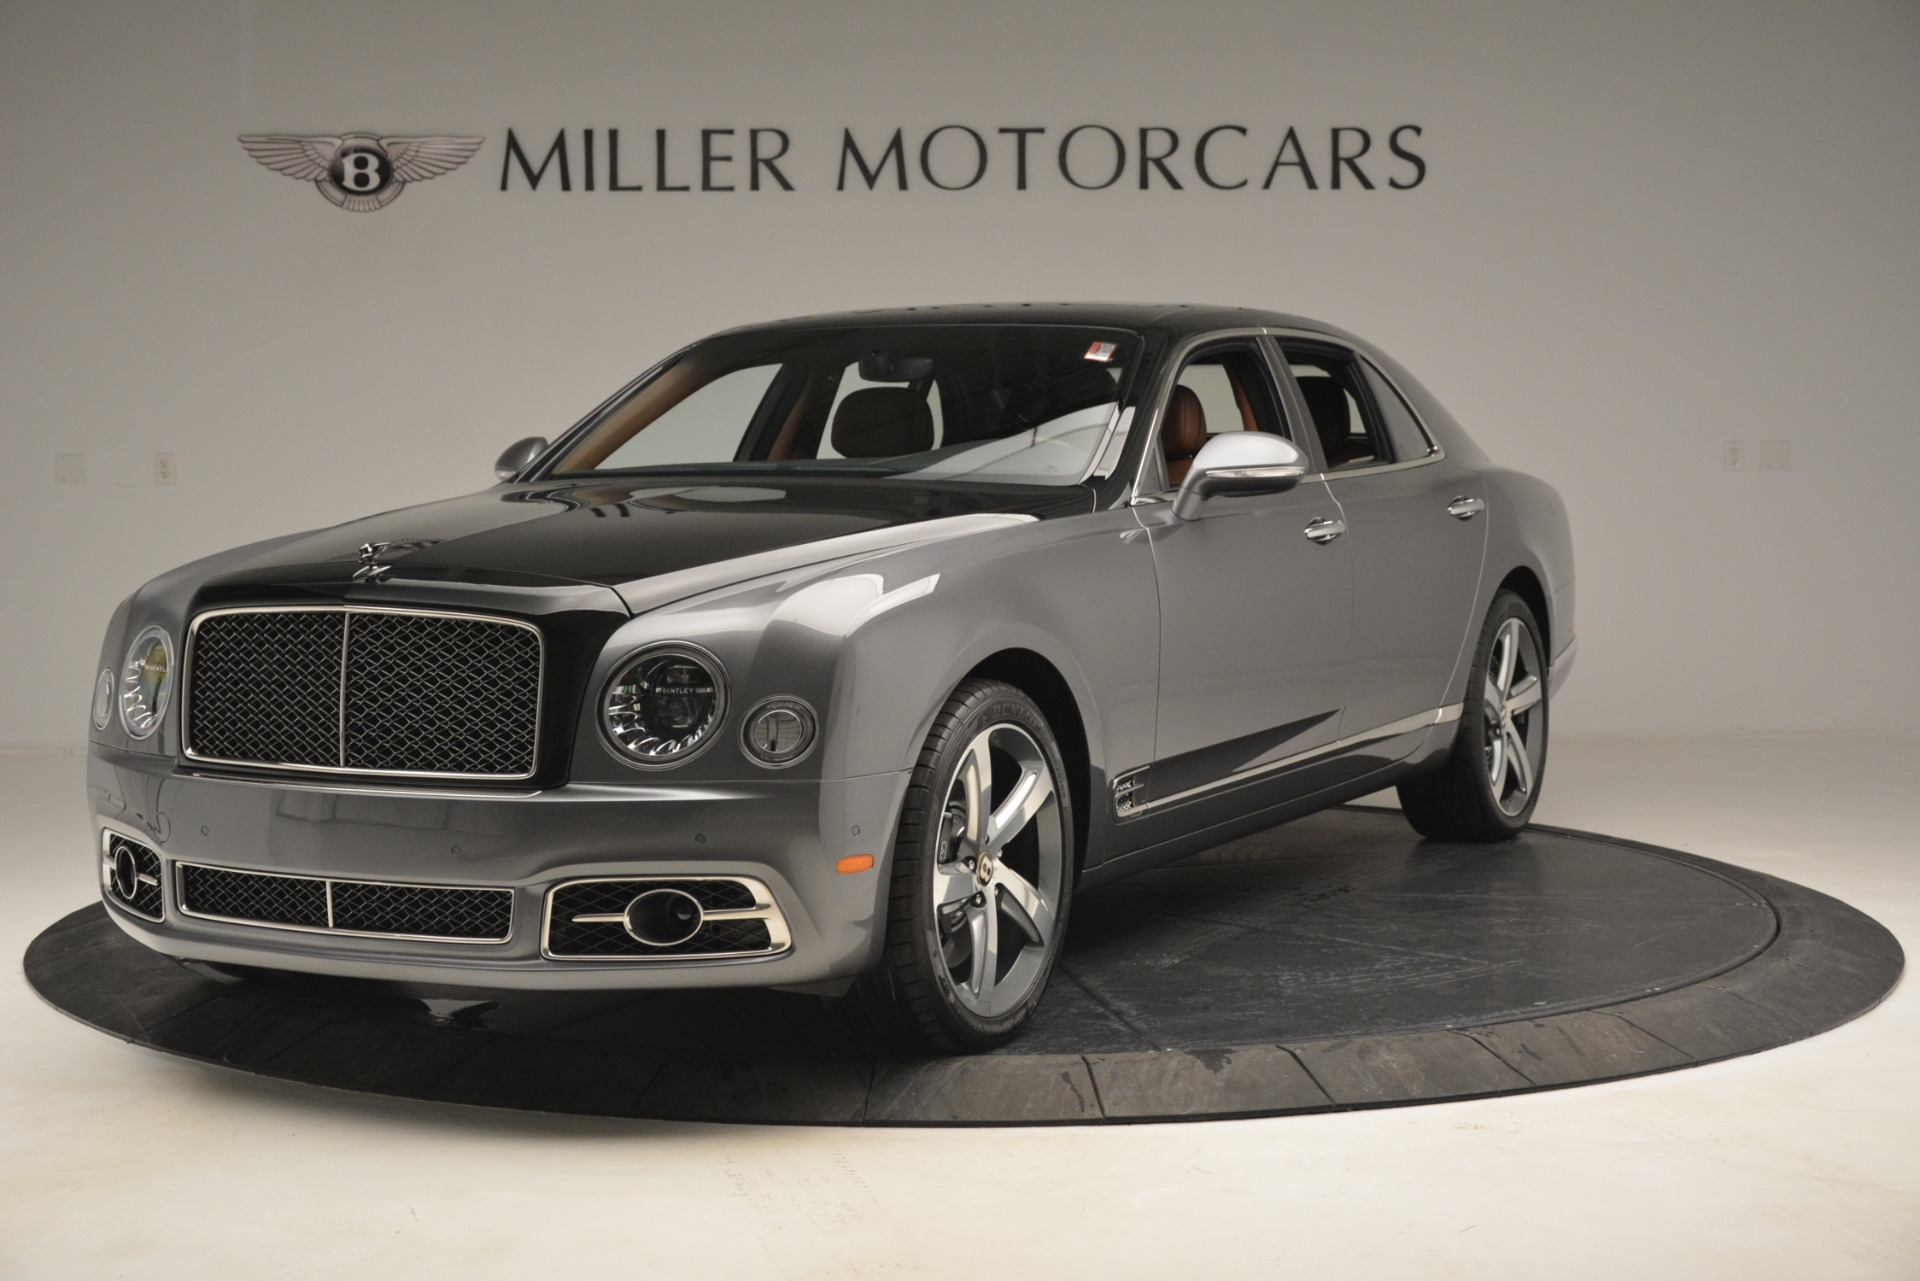 New 2019 Bentley Mulsanne Speed for sale Sold at Bentley Greenwich in Greenwich CT 06830 1